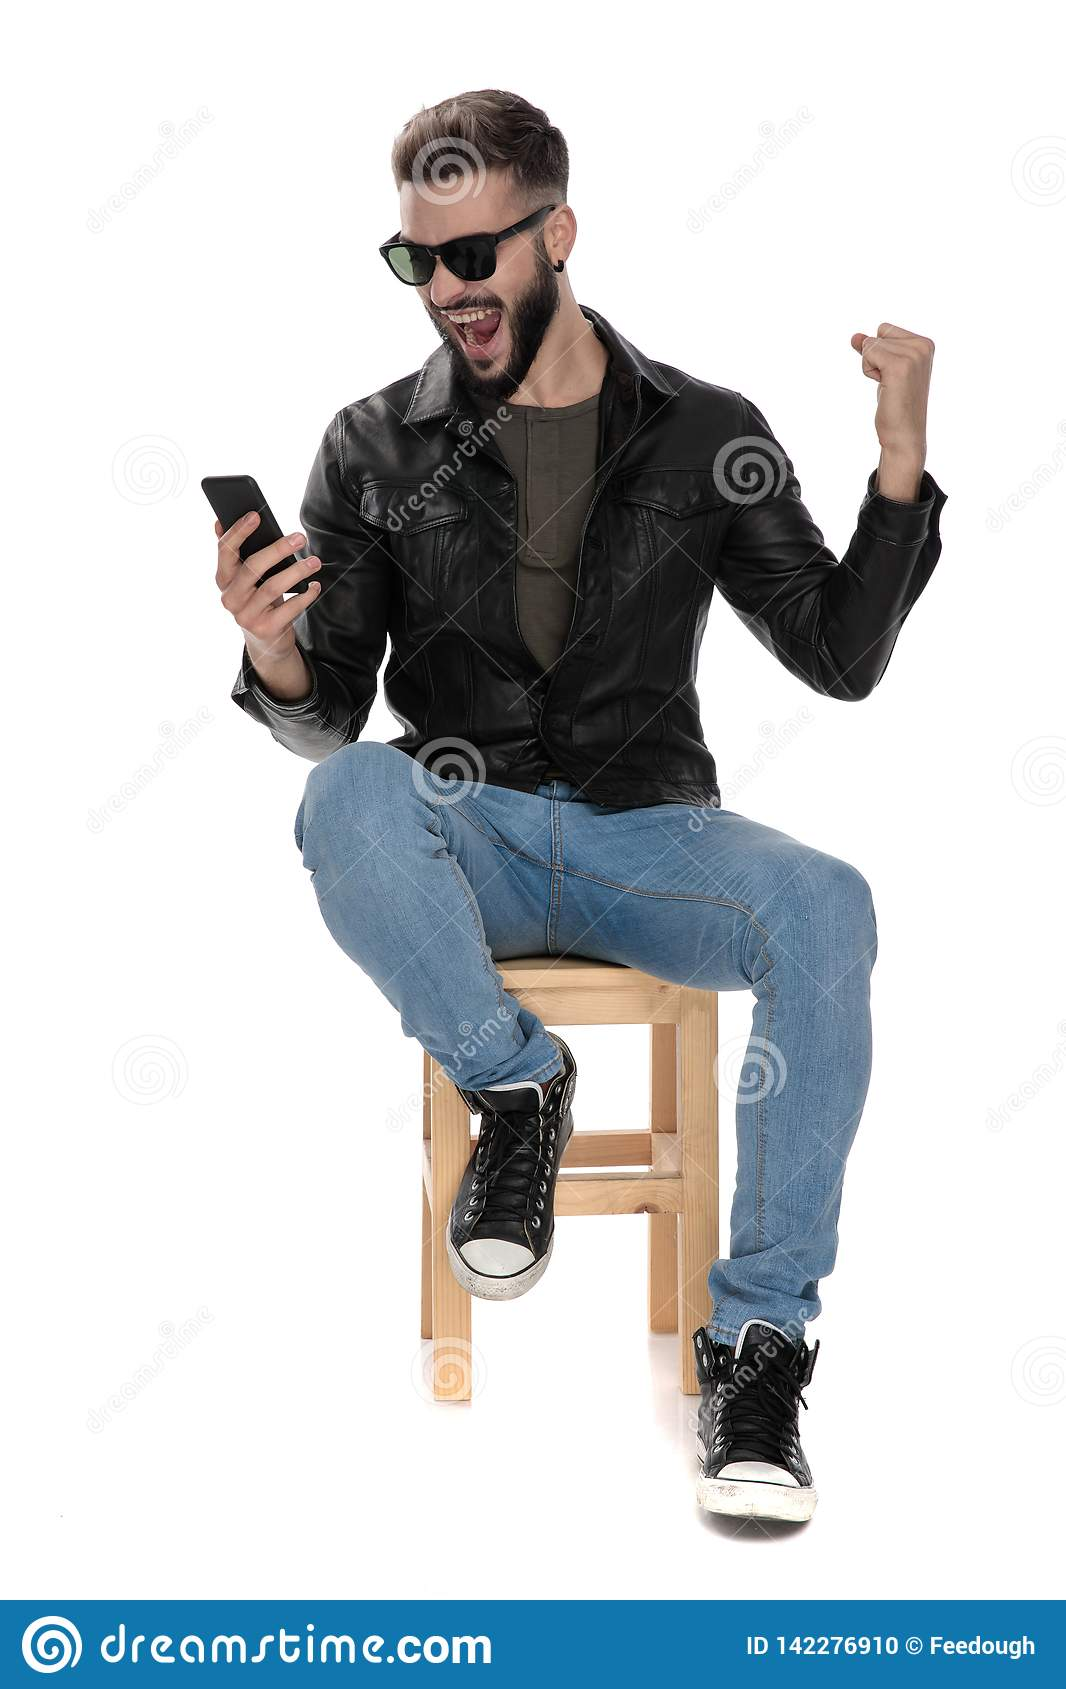 Man sitting on chair while looking at phone celebrating